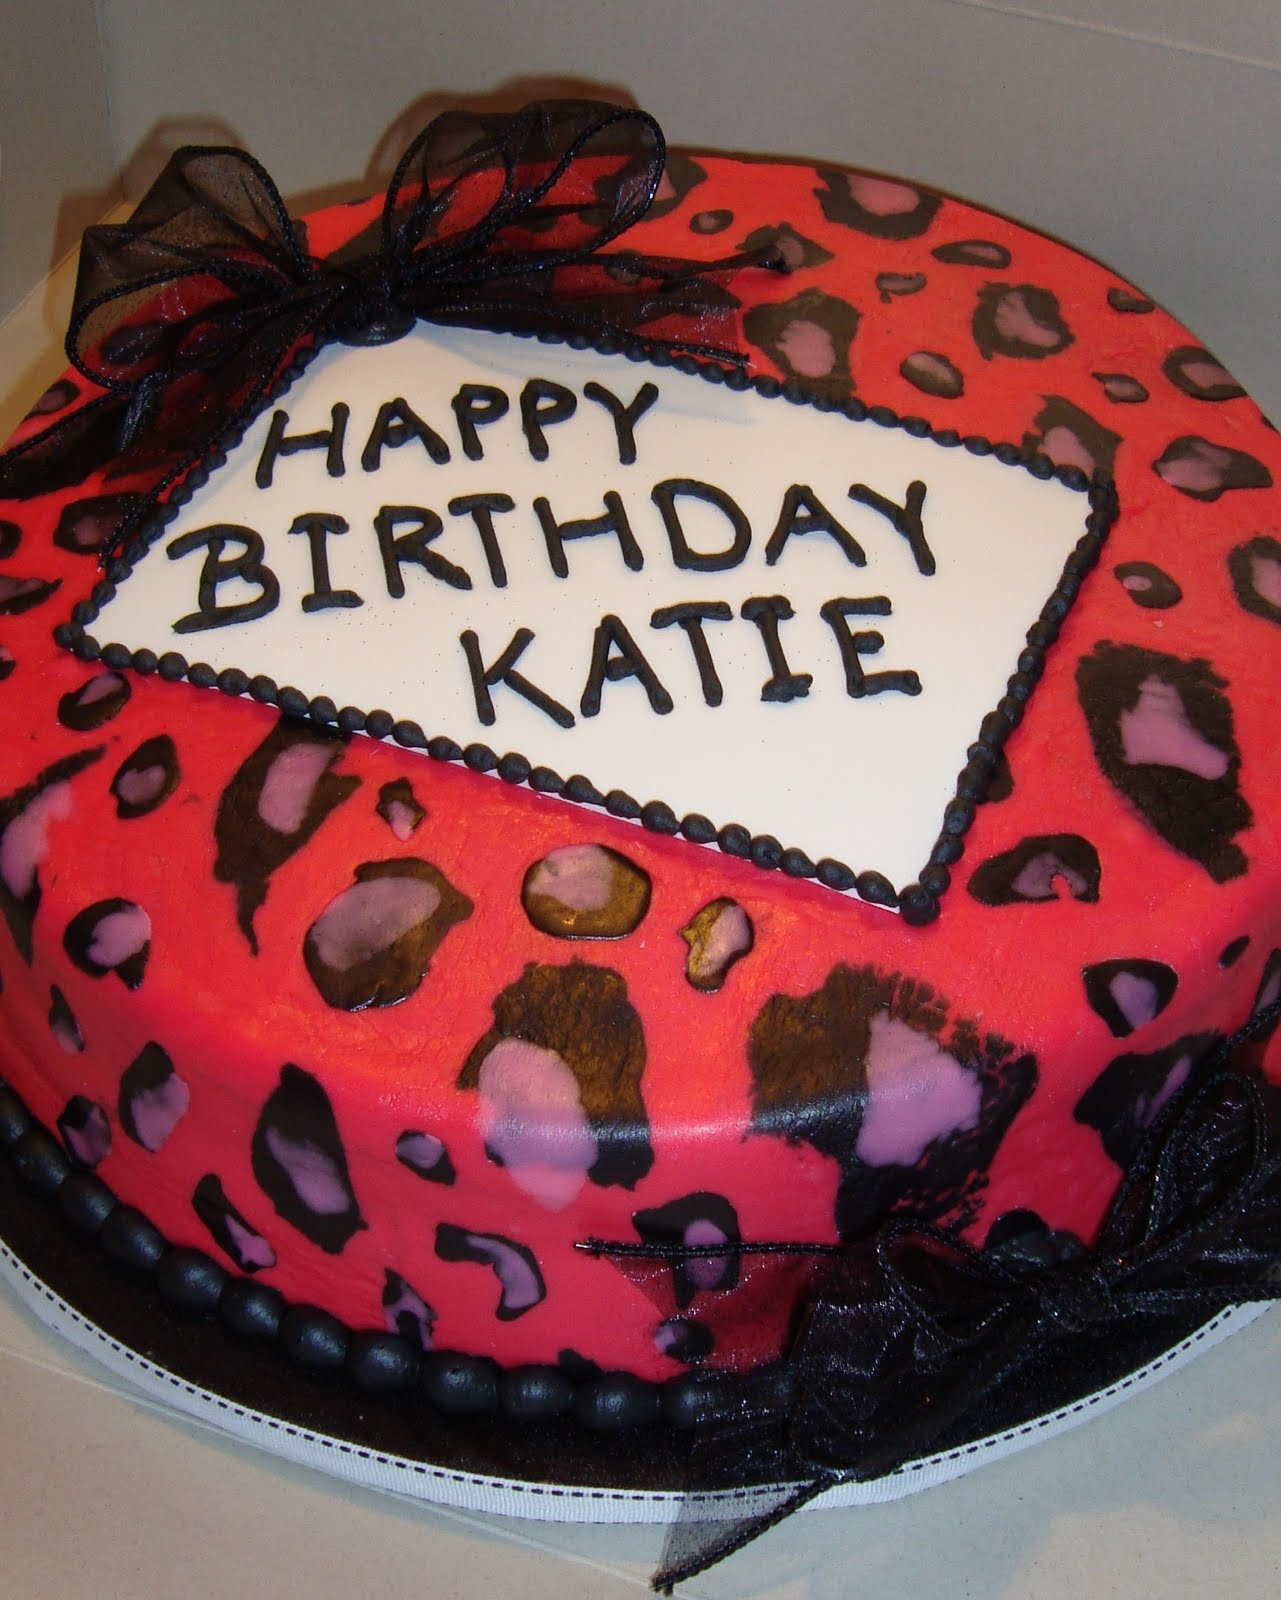 Happy Birthday Katie Cake Atletischsport